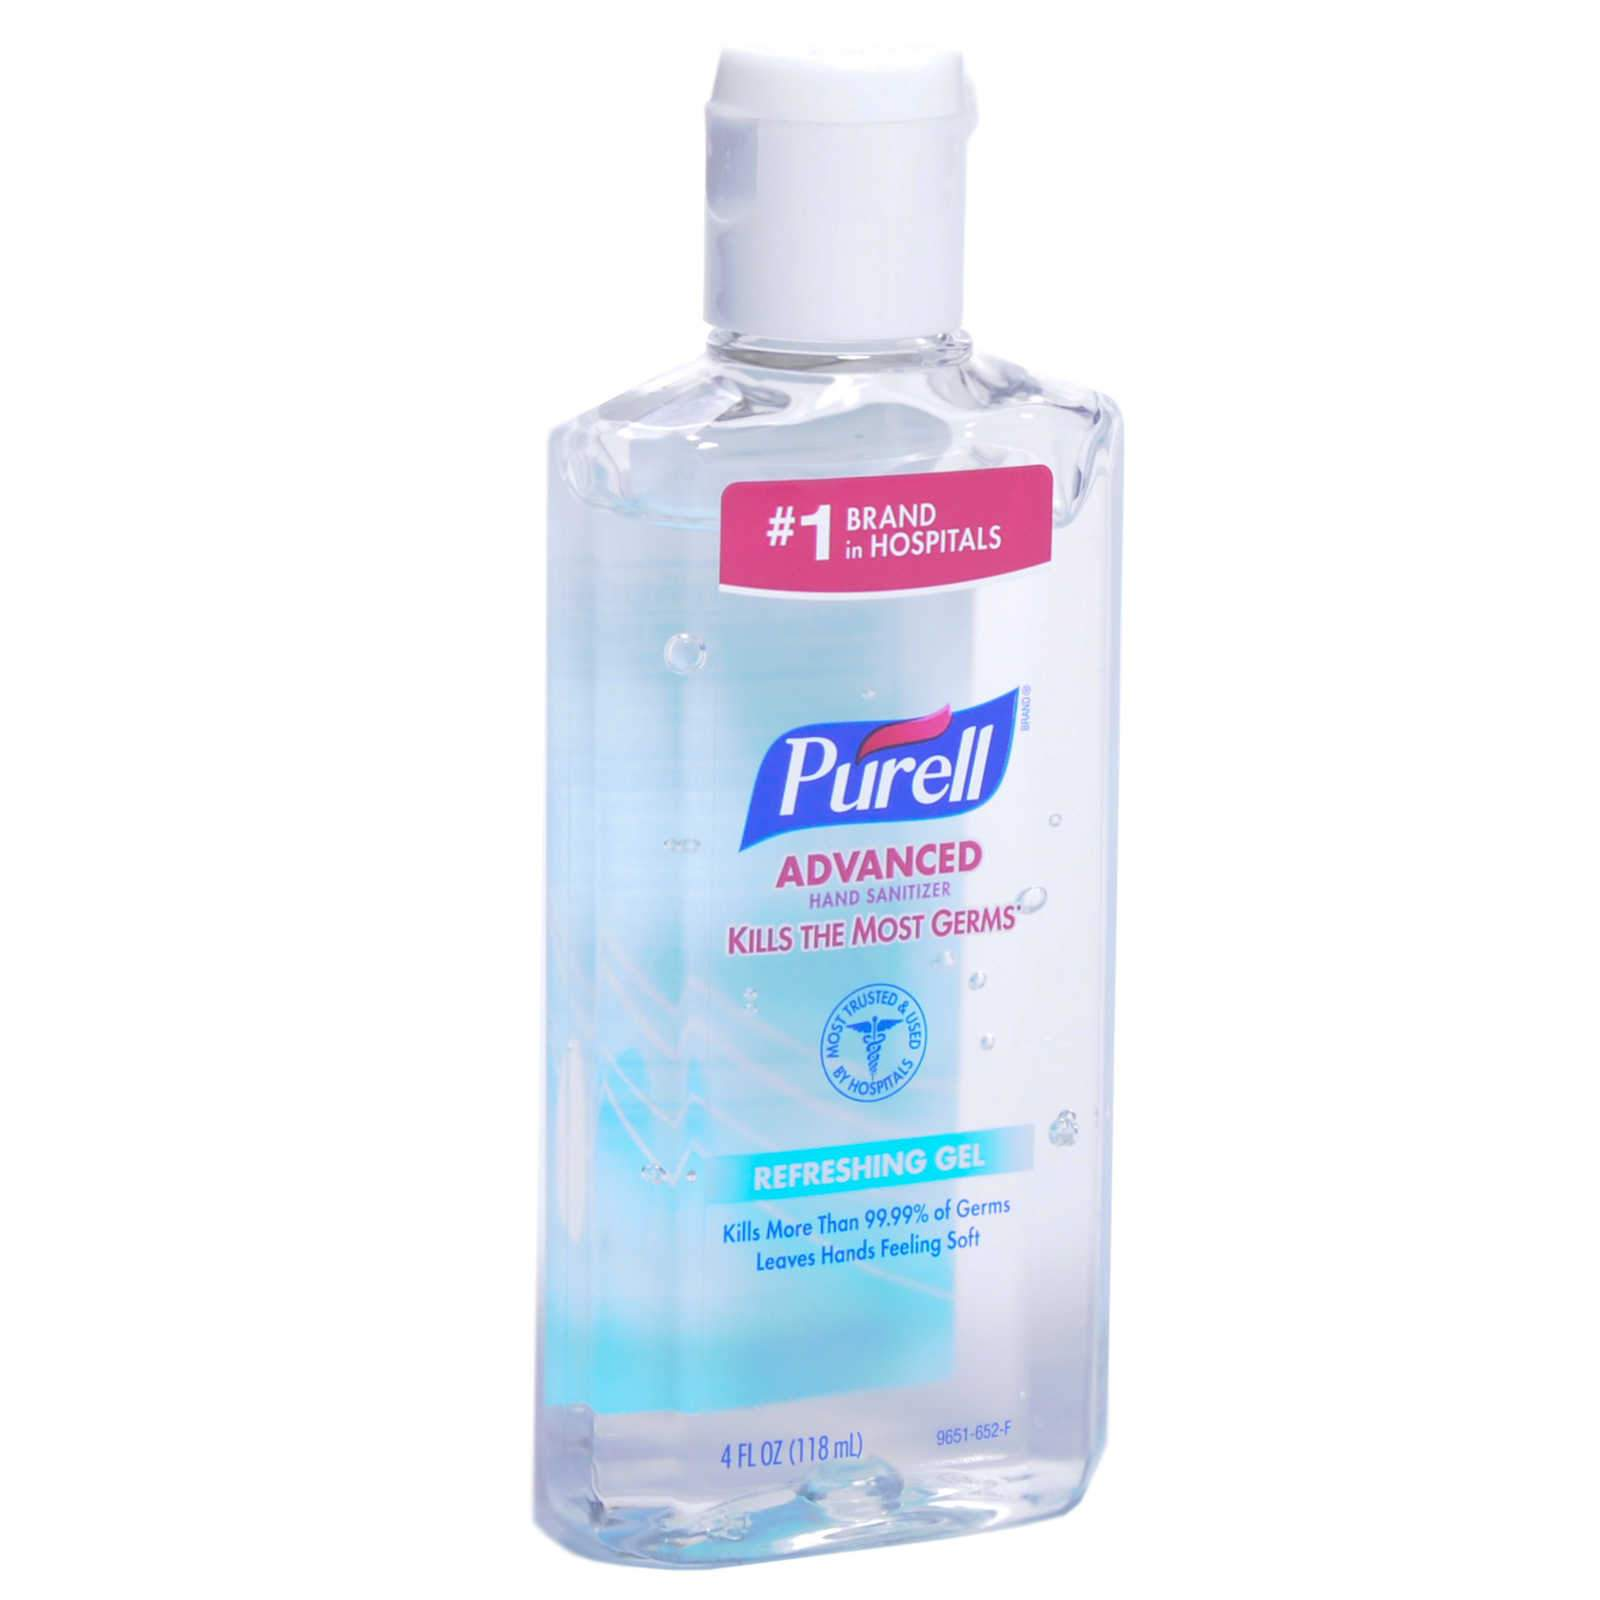 Purell Advanced Instant Hand Sanitizer - 2 oz - M&Y CARE LLC-Healthcare Store